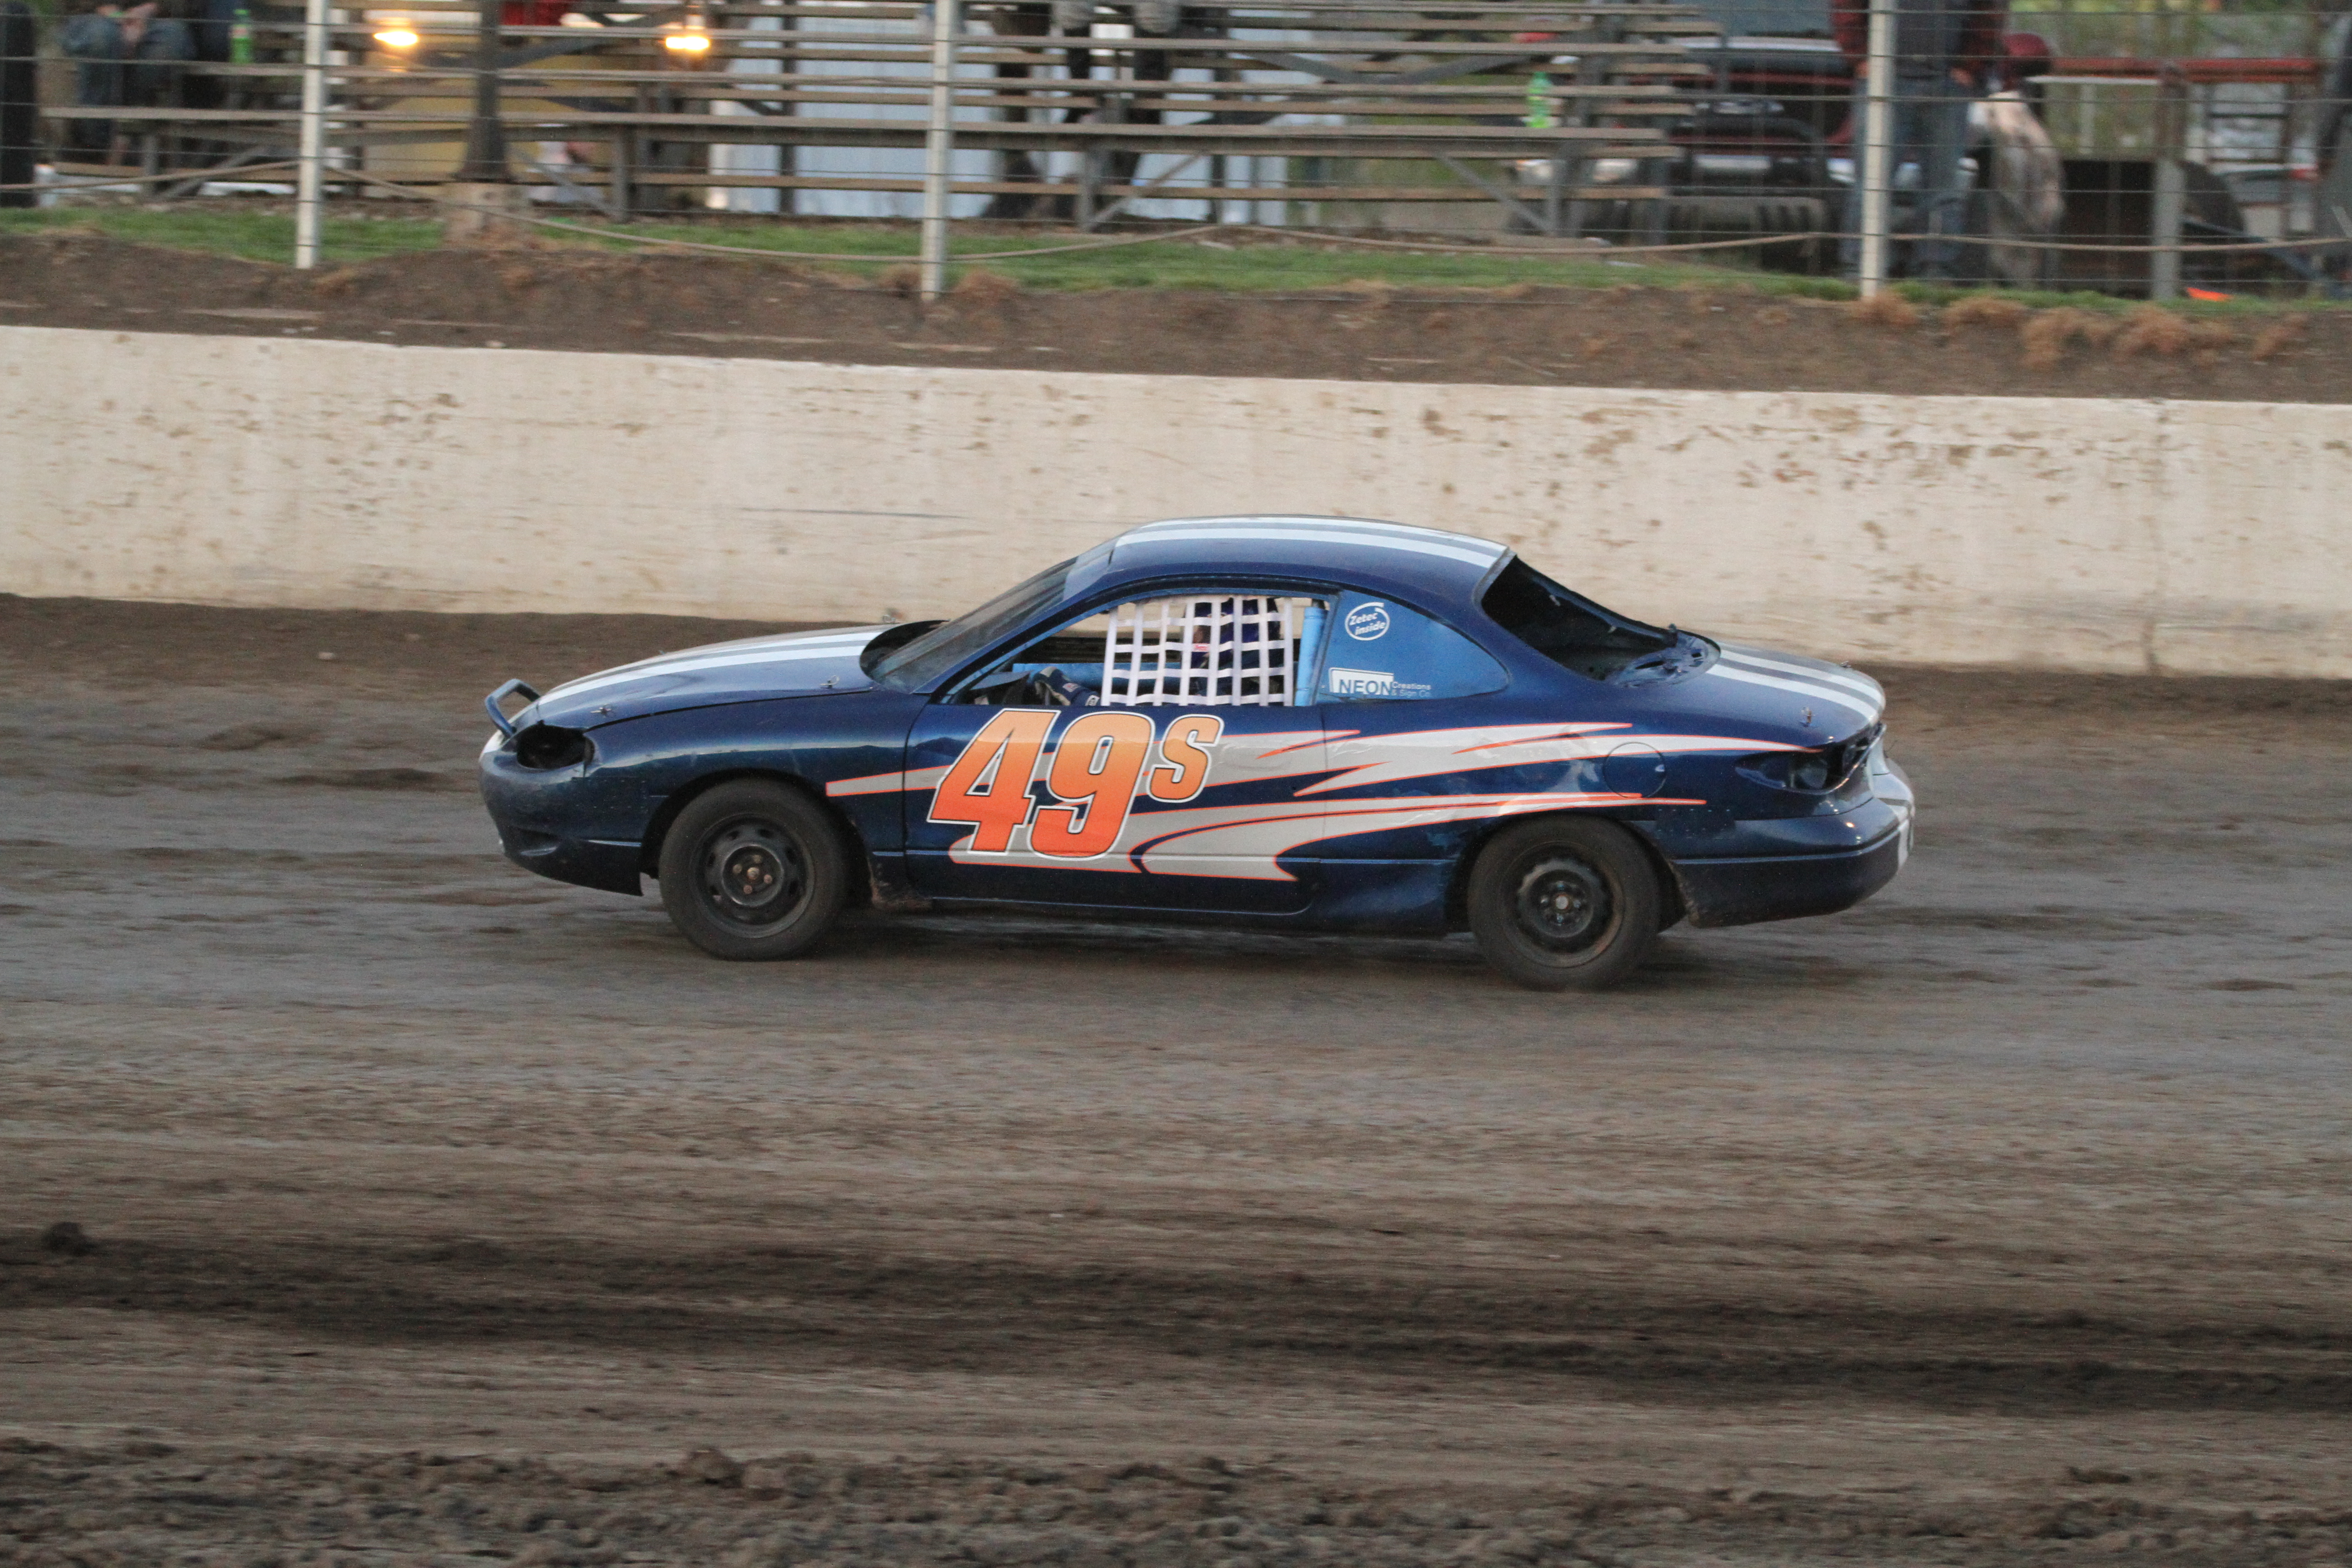 August 12th Bartonville Express Lube Hornet Frenzy 50 $500.00 to win Hornets post thumbnail image